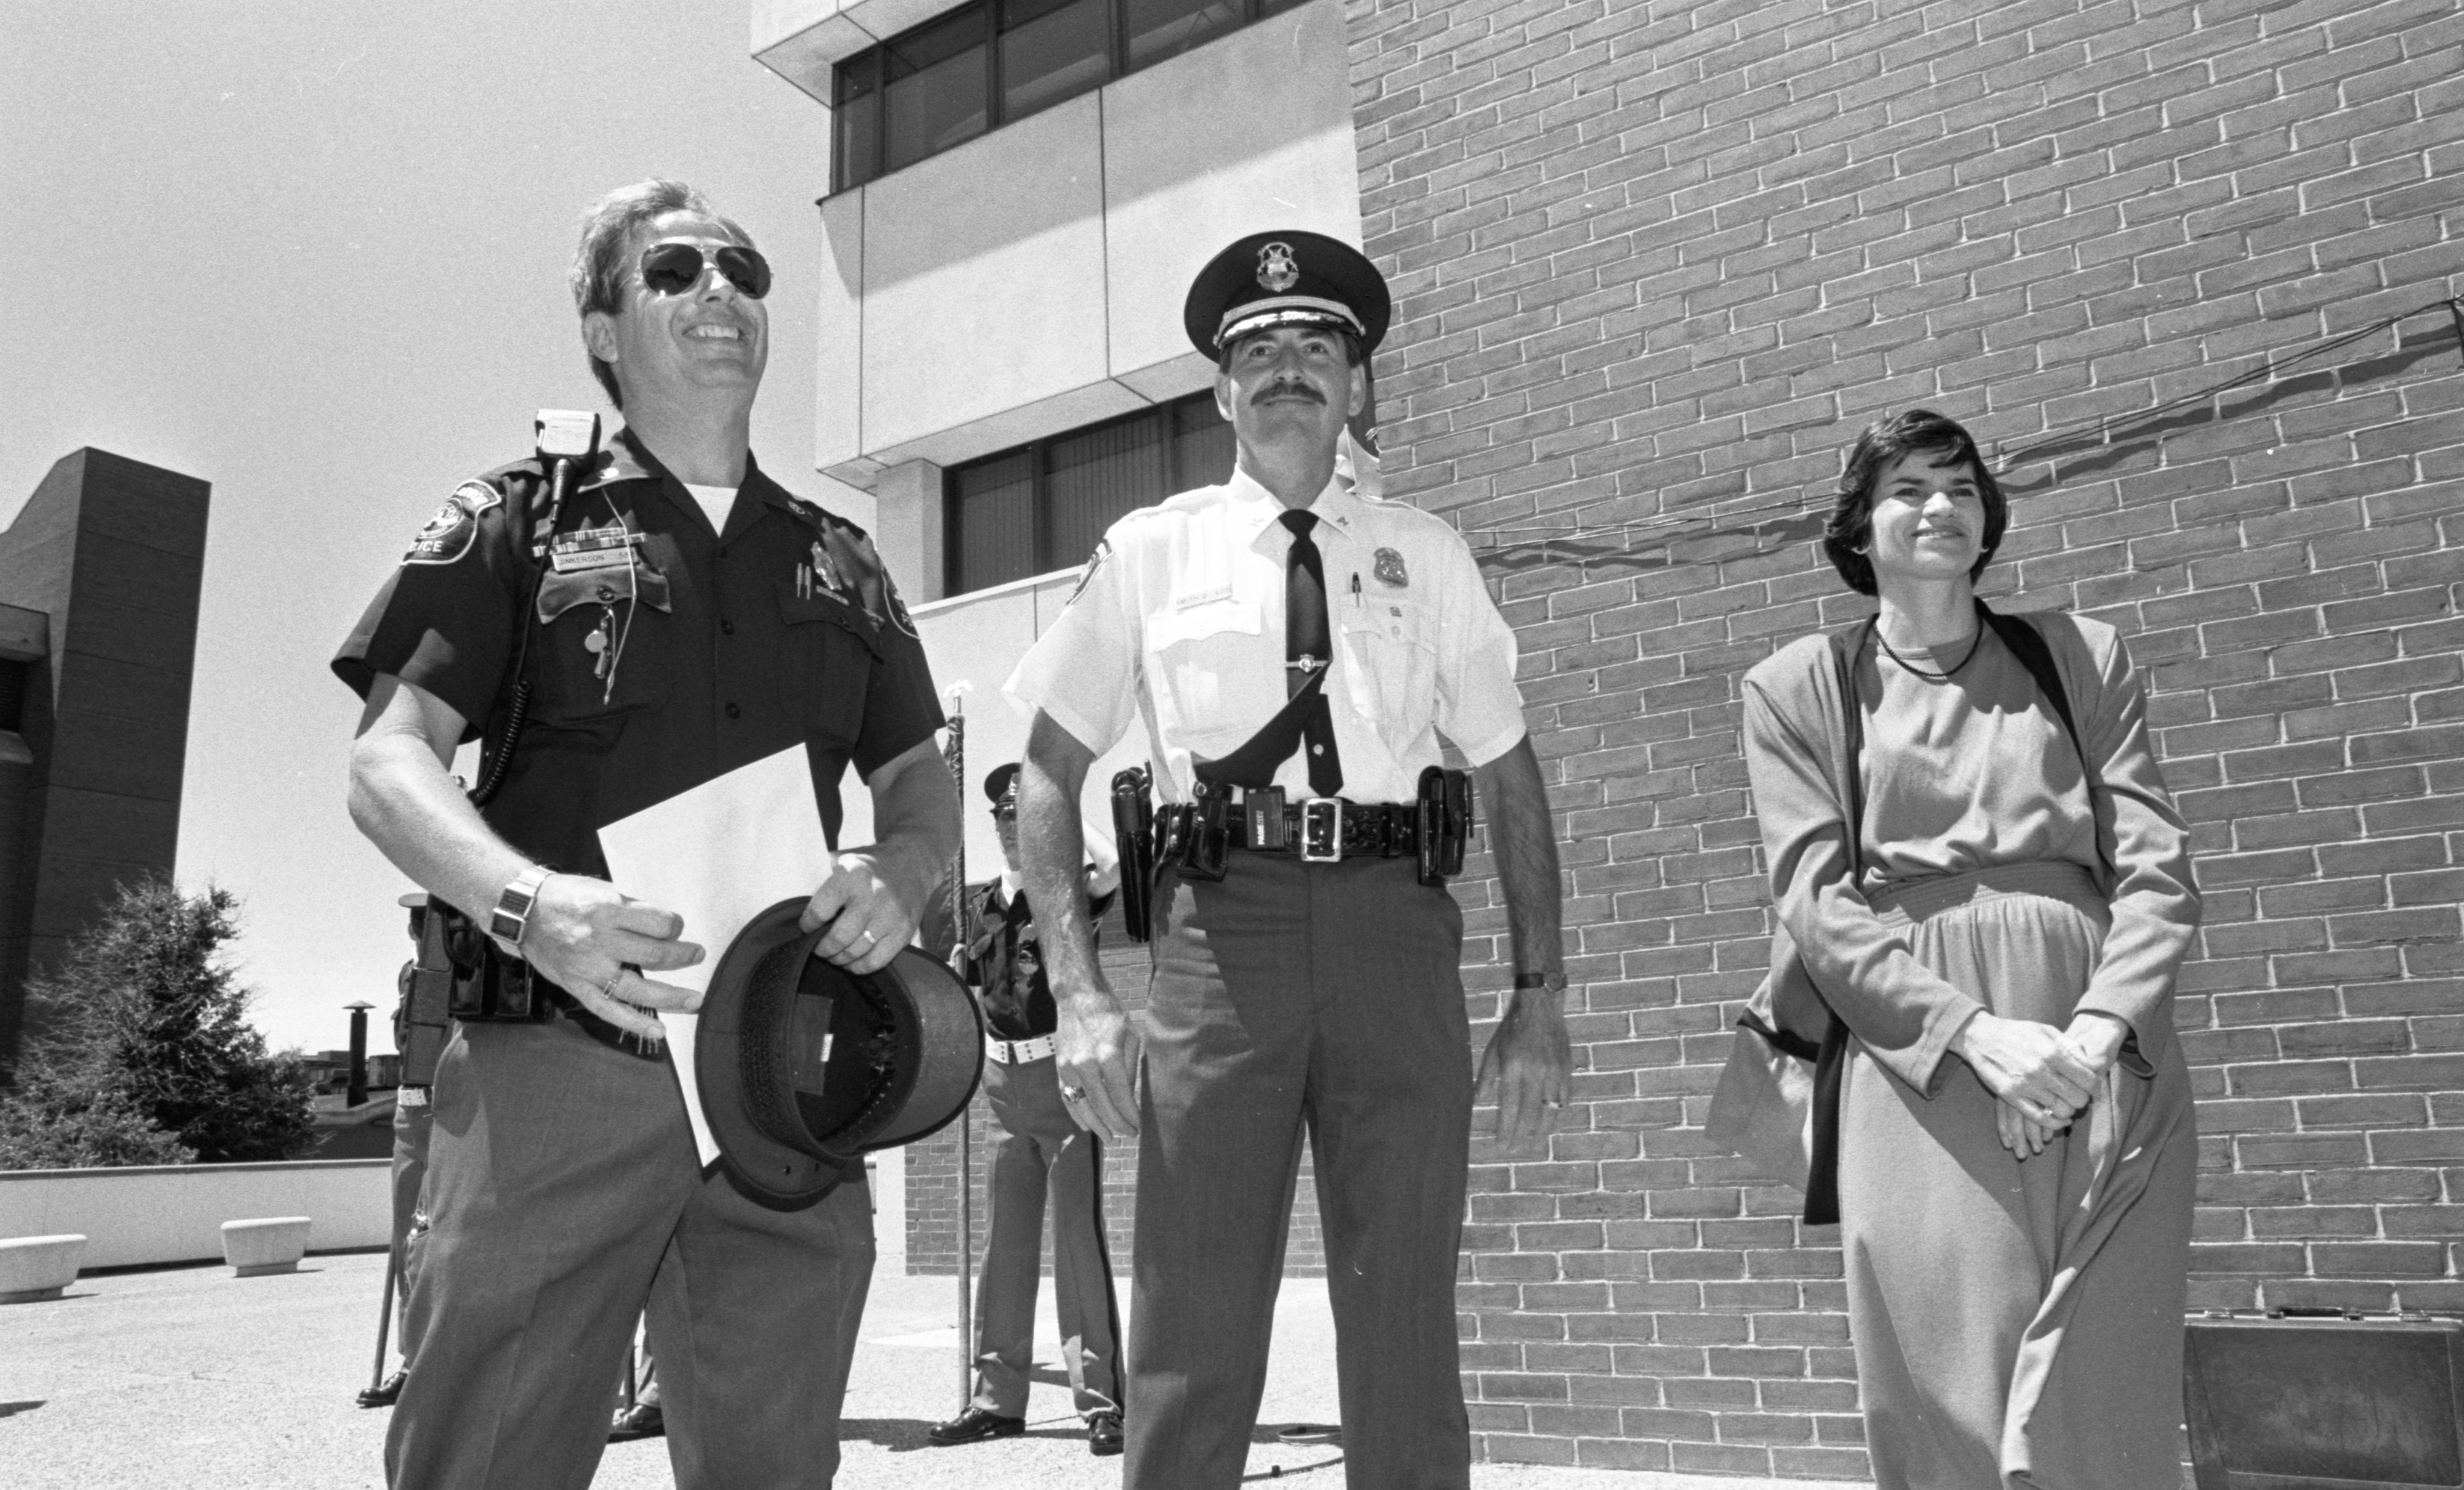 Sergeant Harry Jinkerson Honored At Ann Arbor Police Department Awards Ceremony, June 1991 image